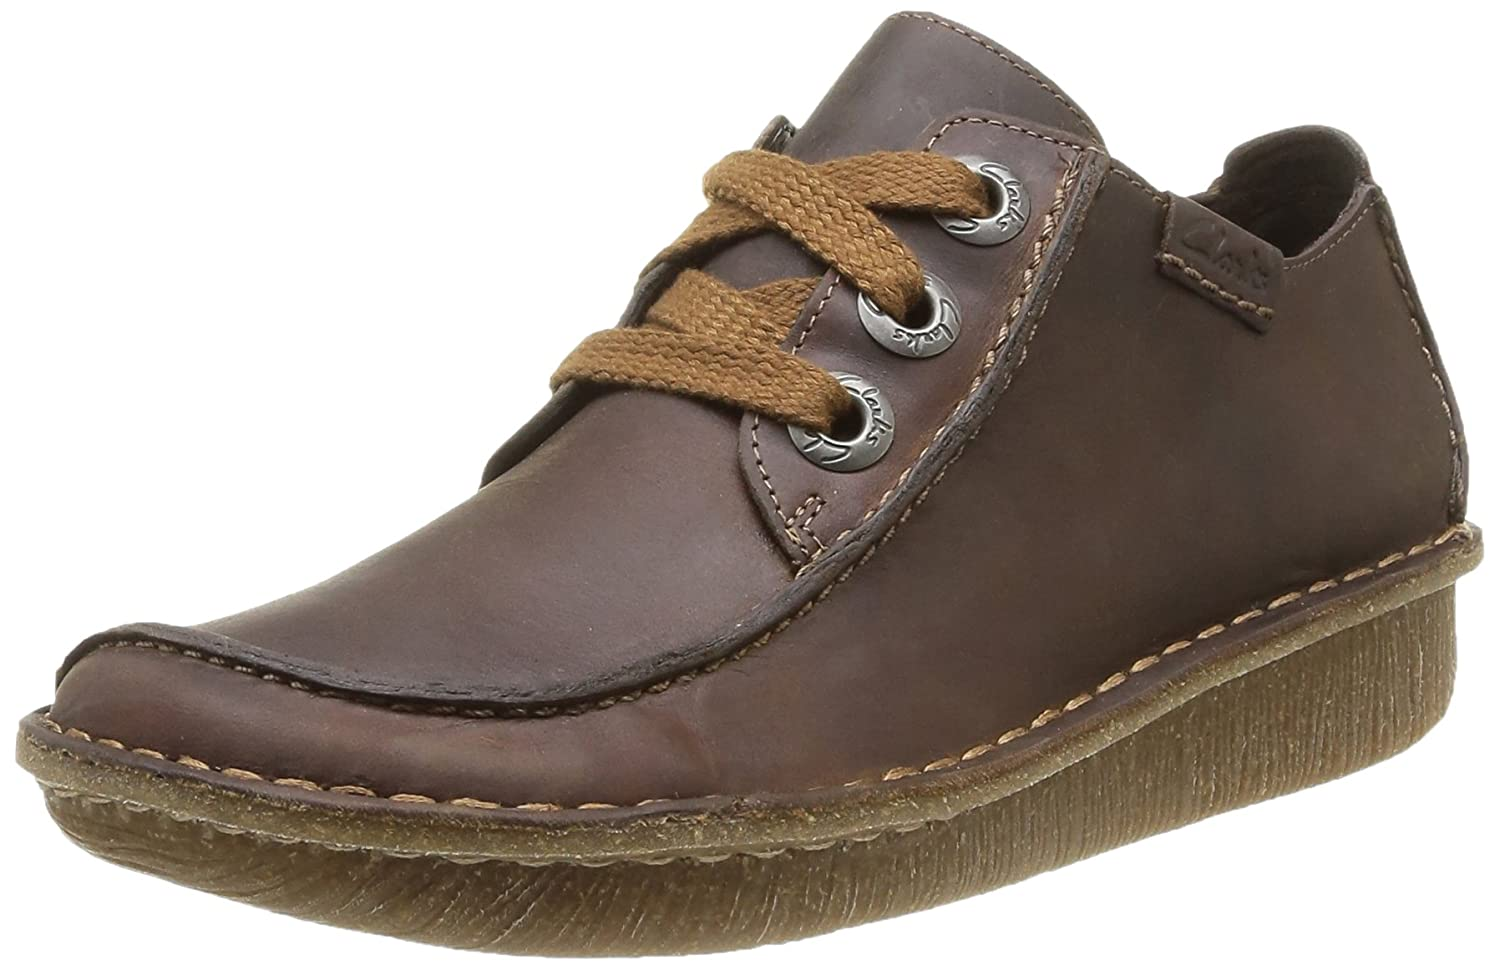 Clarks Funny Dream, Zapatos de Cordones Derby para Mujer 36 EU|Marrón (Brown Leather)